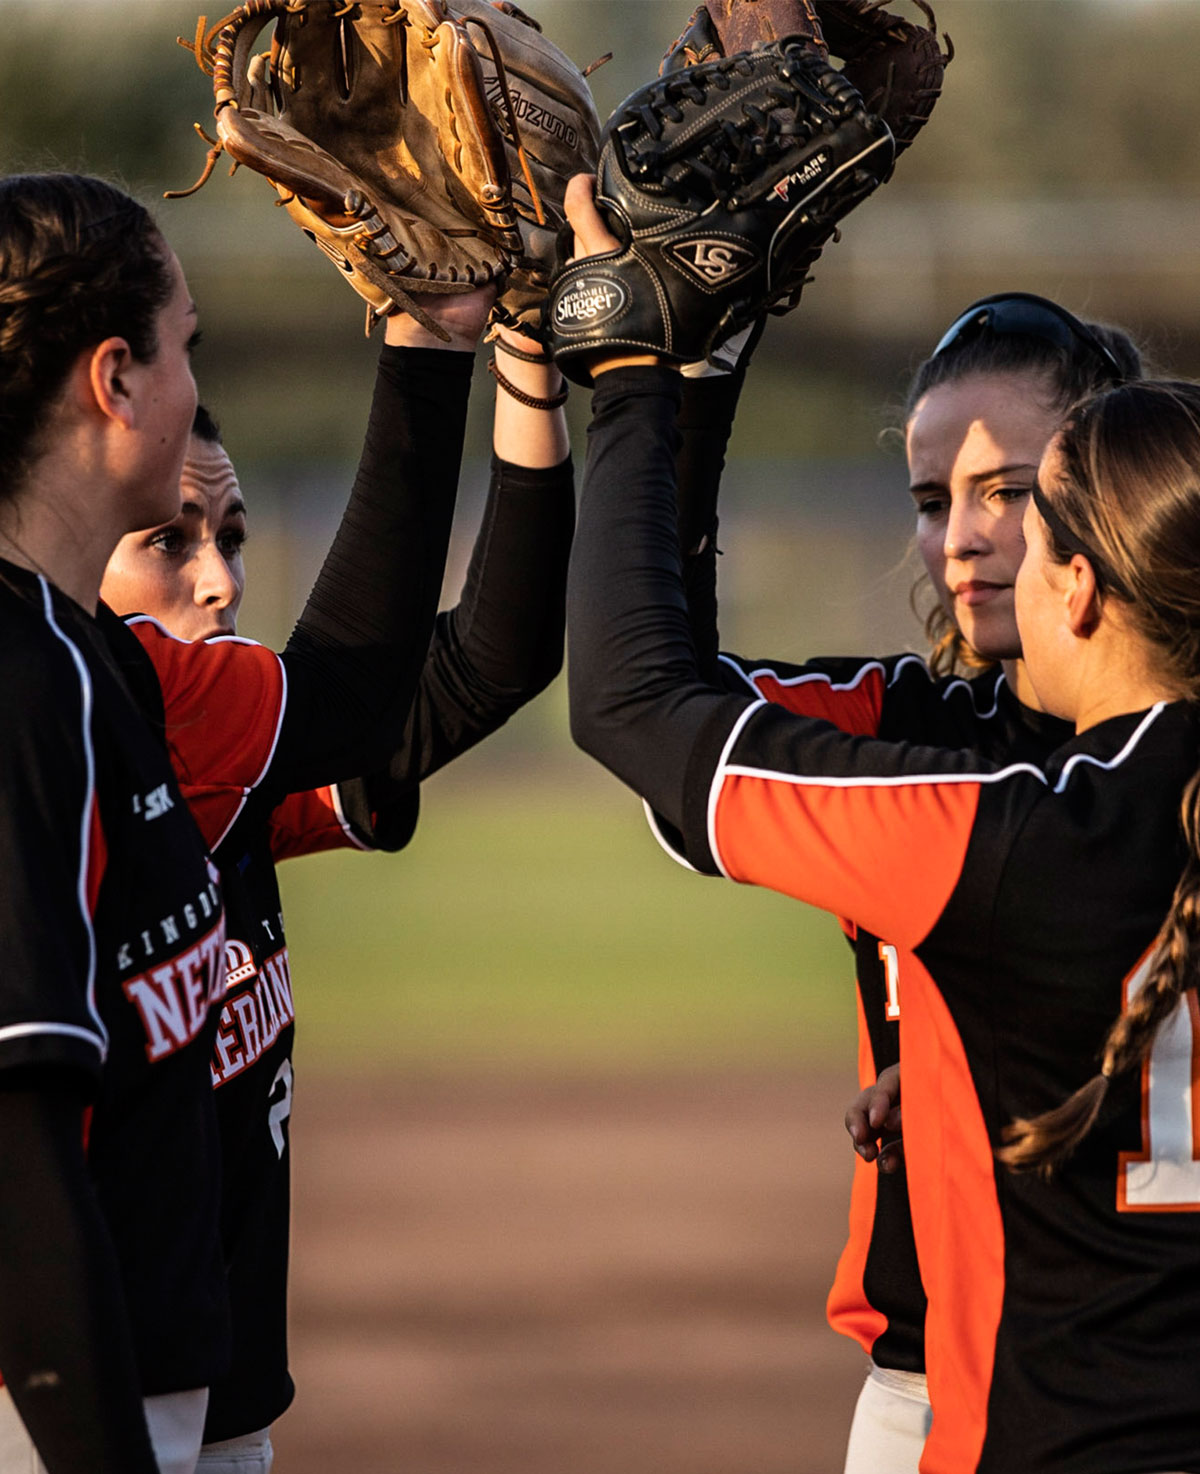 https://softball-qualifier.nl/wp-content/uploads/2019/04/high-five-high.jpg